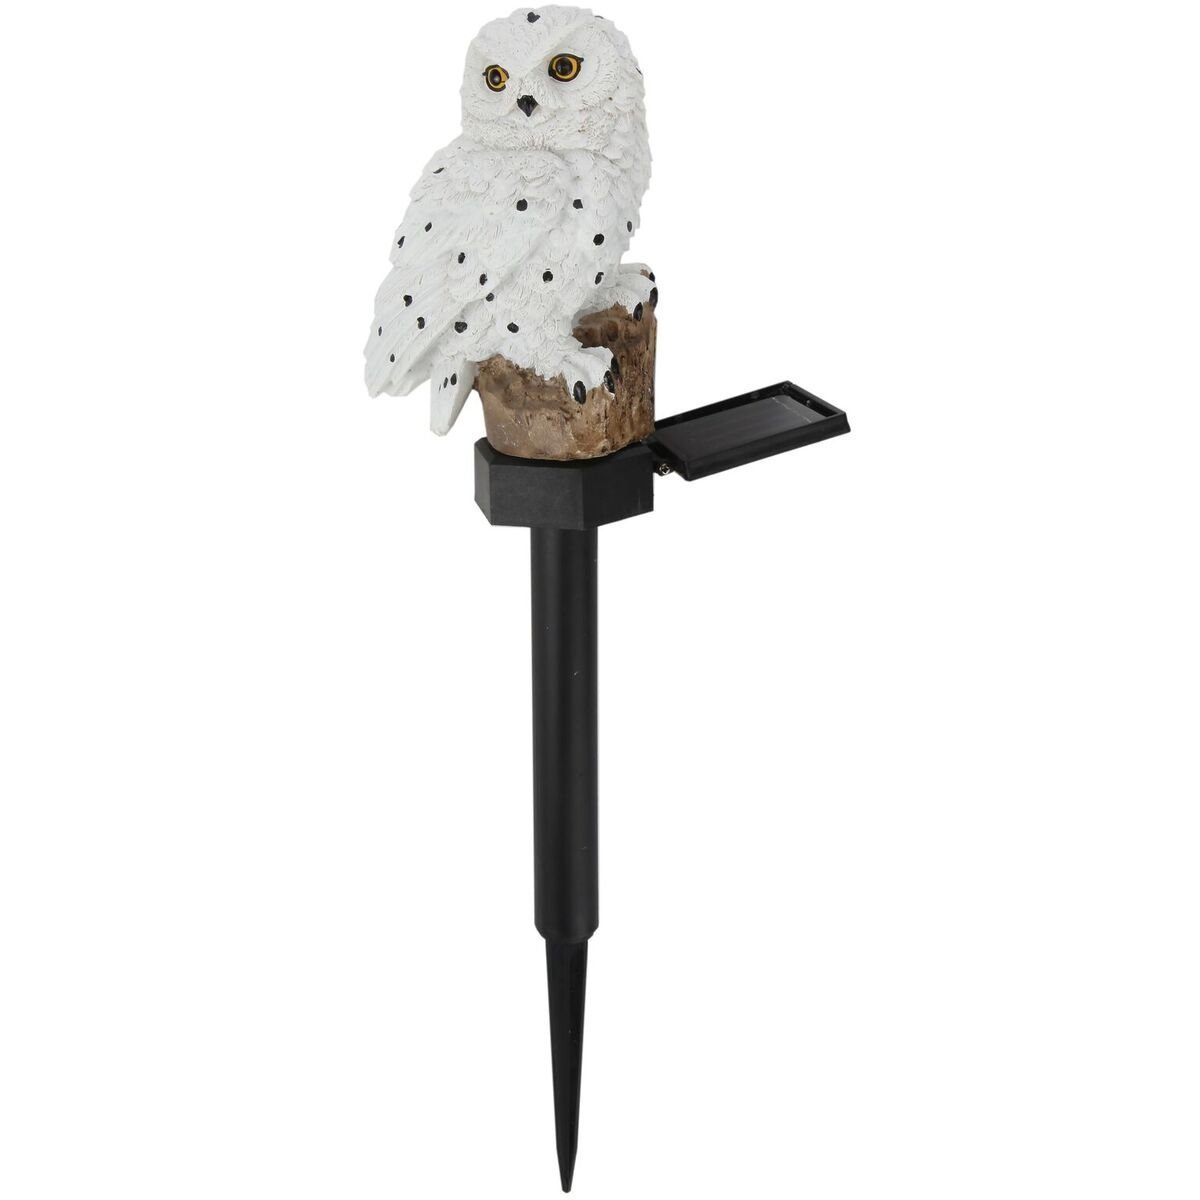 Trenton Gifts Weather Resistant Outdoor LED Solar Owl Light, Garden Stake | White